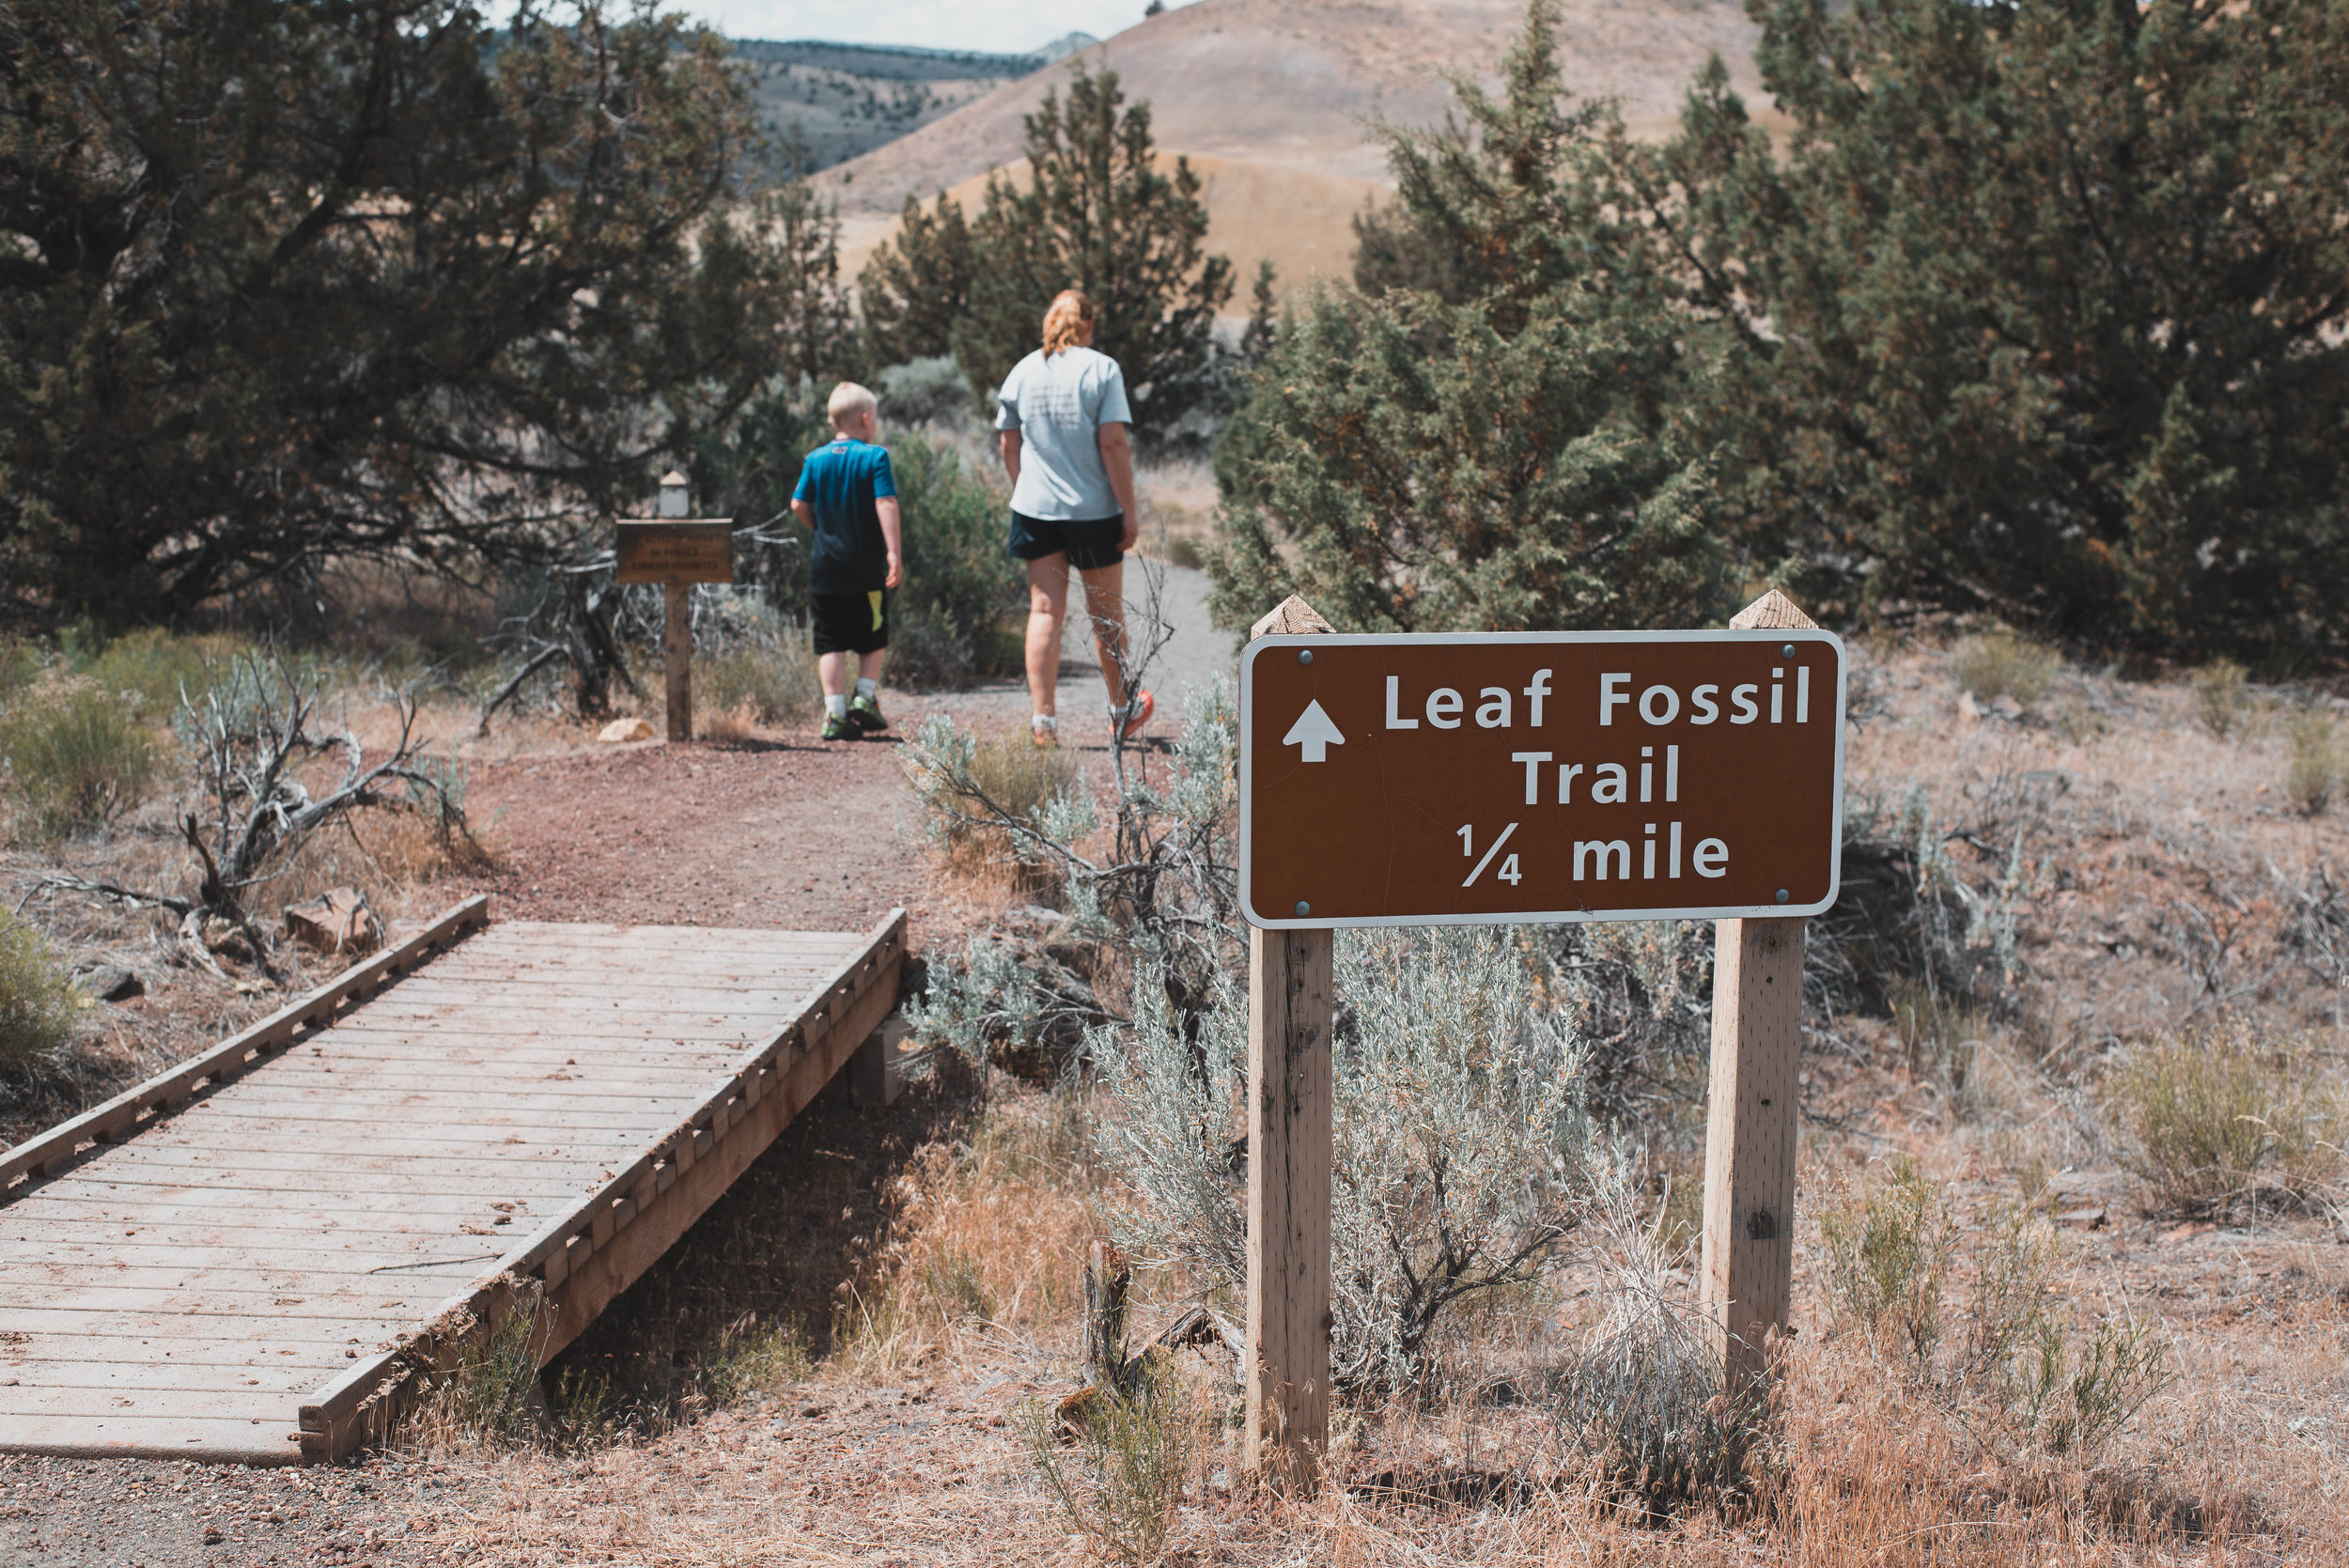 The beginning of the Leaf Fossil Trail at the Painted Hills in Oregon